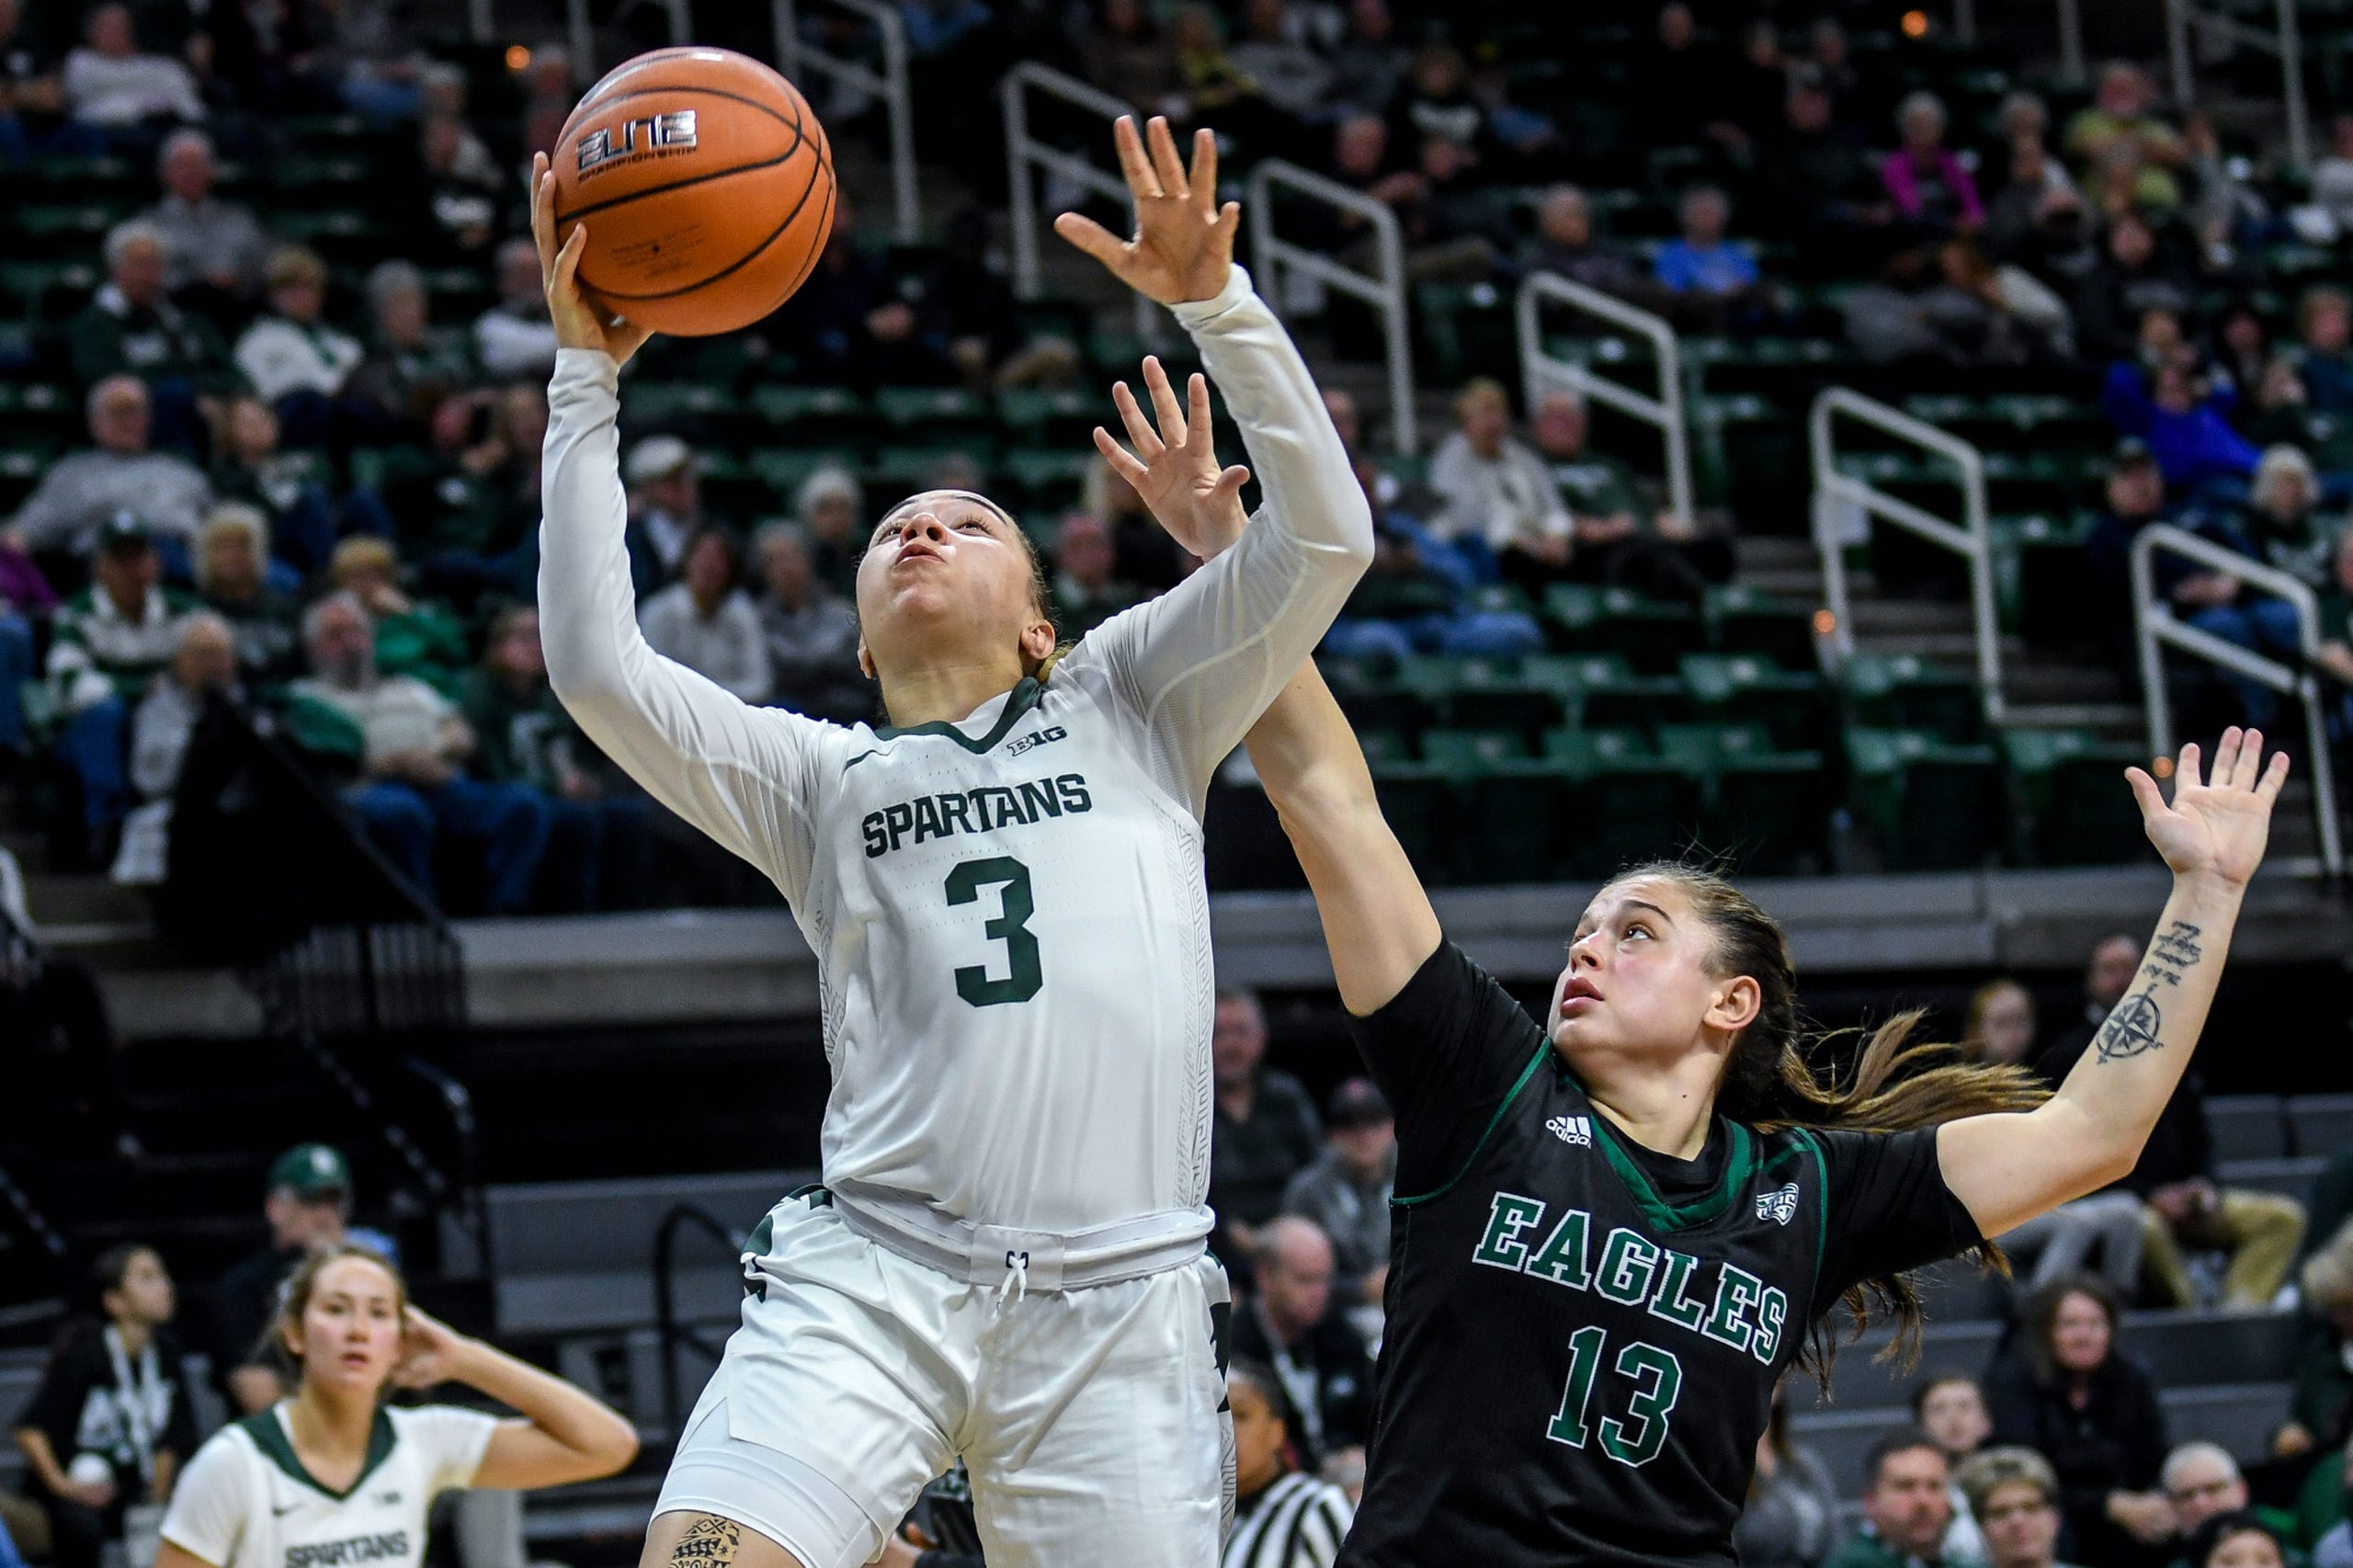 Michigan State's Alyza Winston, left, shoots as Eastern Michigan's Jenna Annecchiarico defends during the  fourth quarter on Tuesday, Nov. 5, 2019, at the Breslin Center in East Lansing.